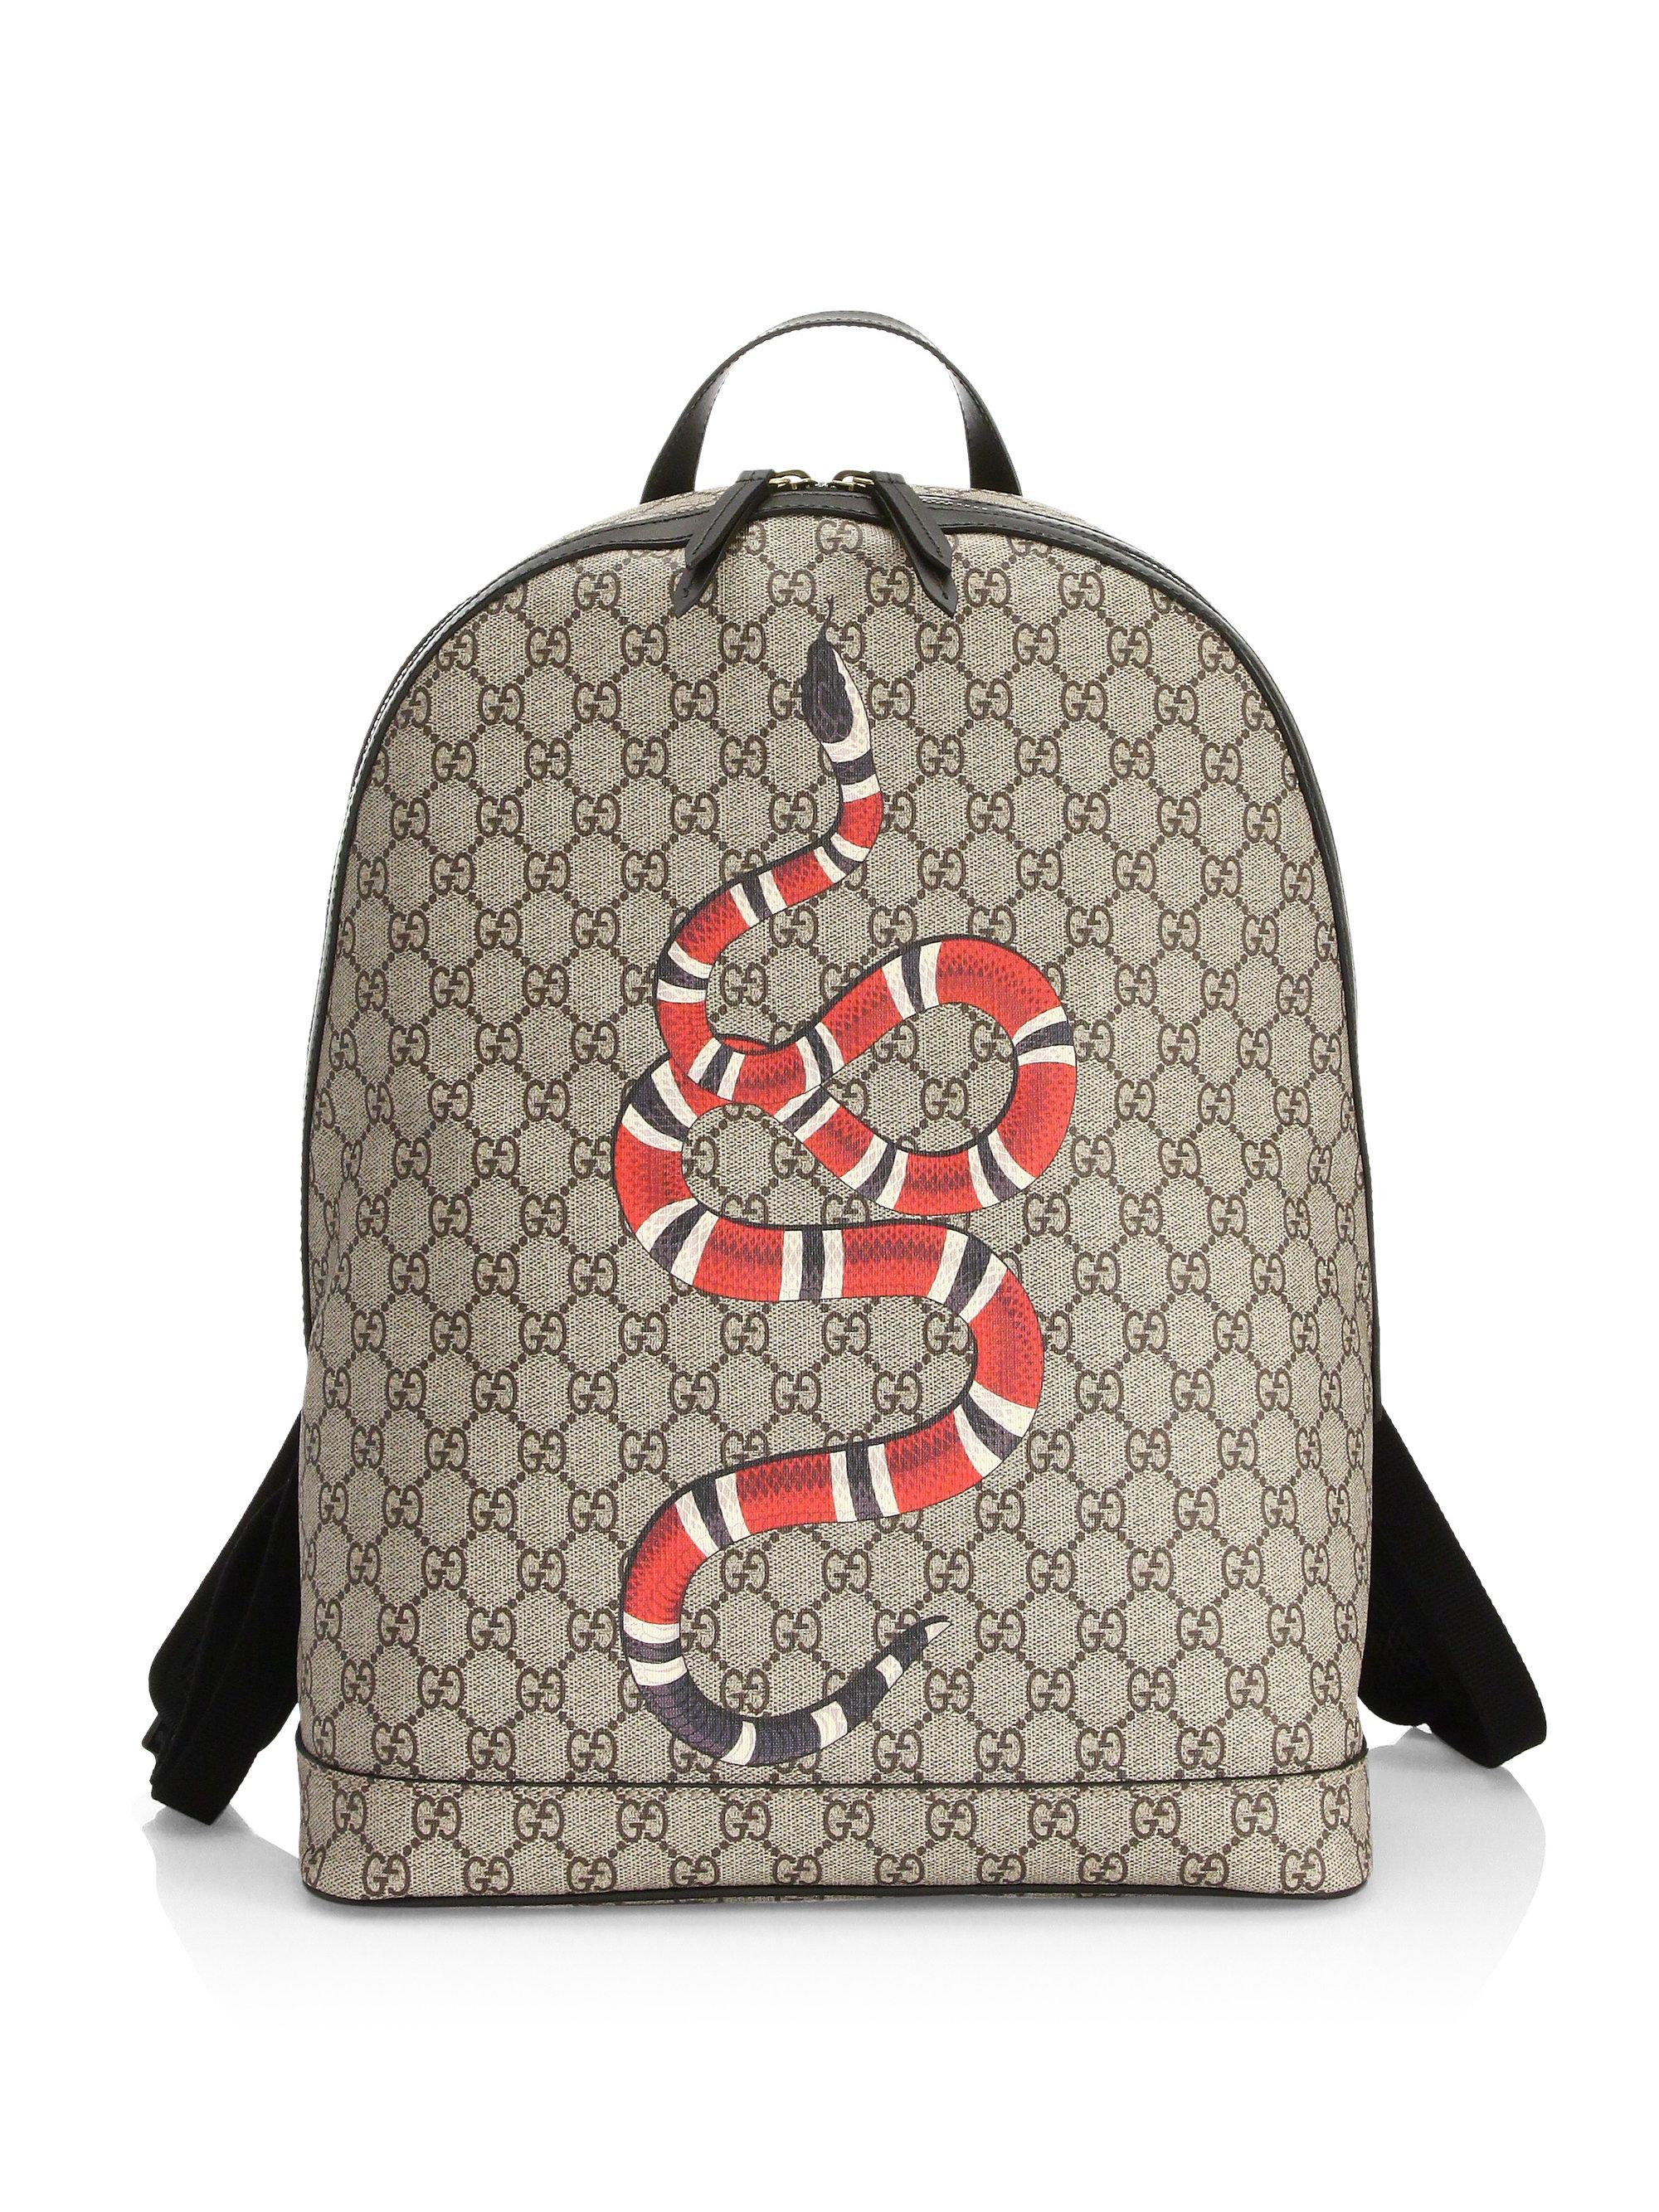 Lyst - Gucci Kingsnake Print Gg Supreme Canvas Backpack in Brown for Men 9baf725723